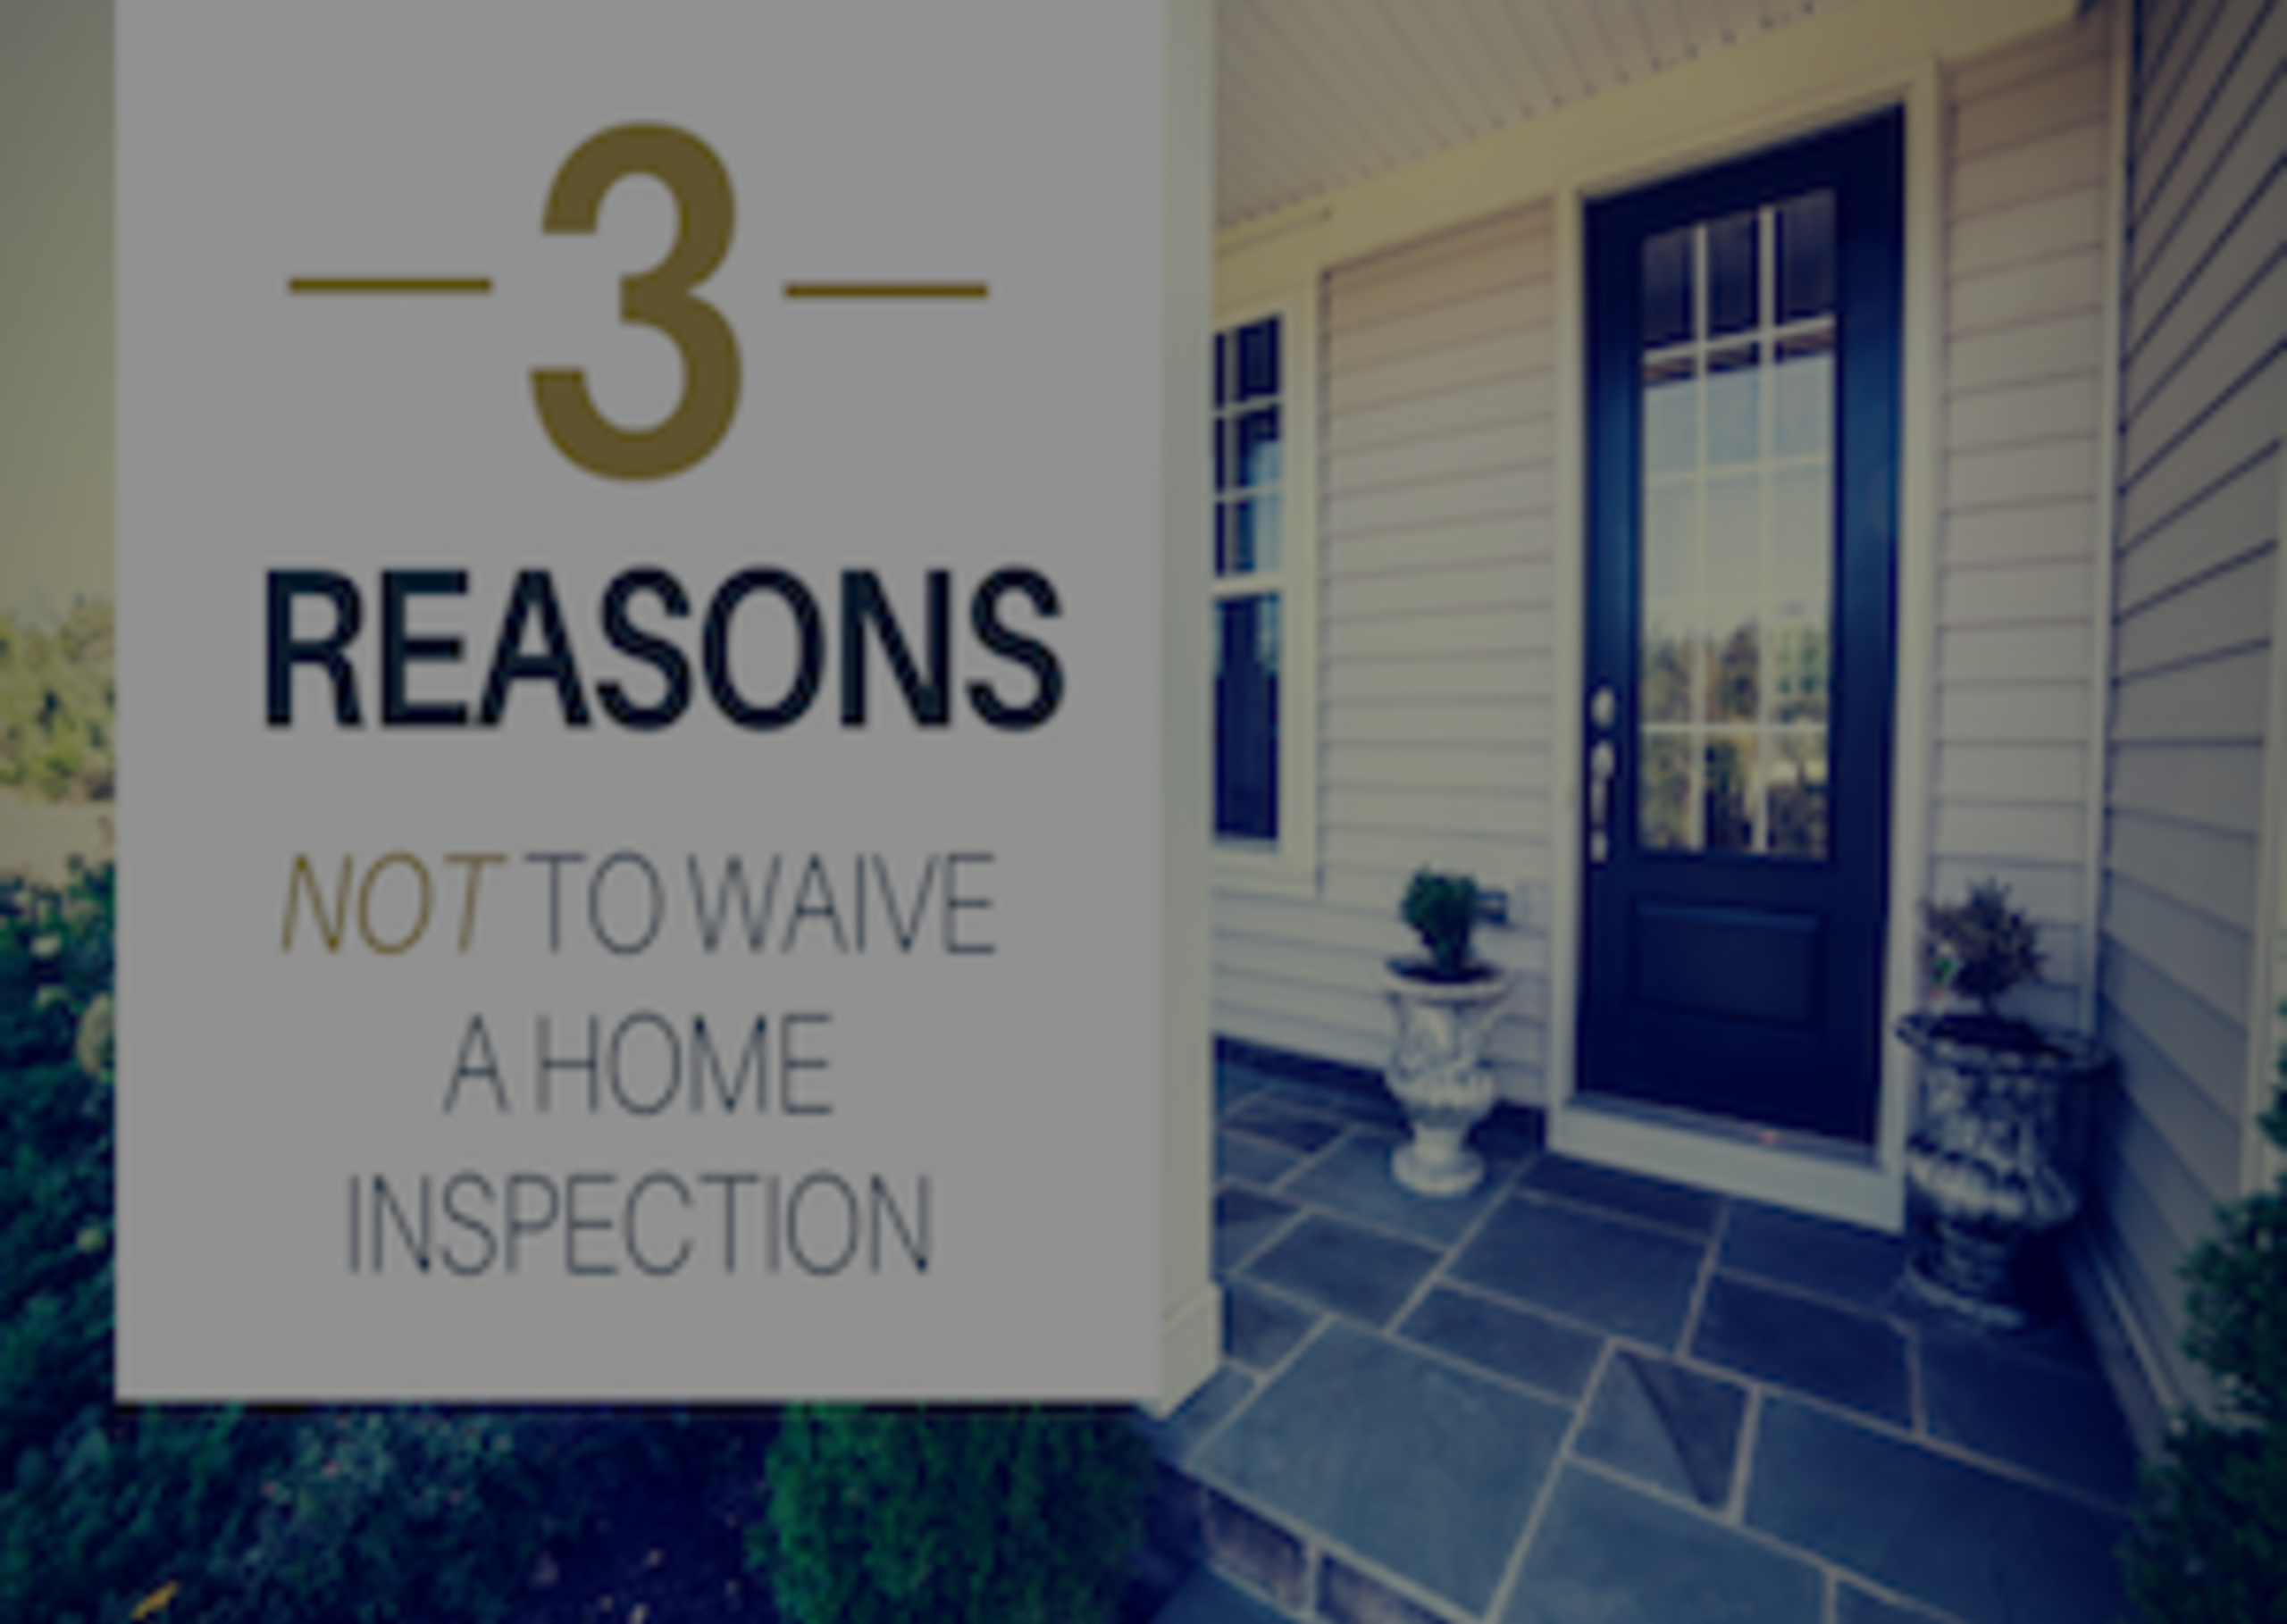 3 Reasons Not to Waive a Home Inspection